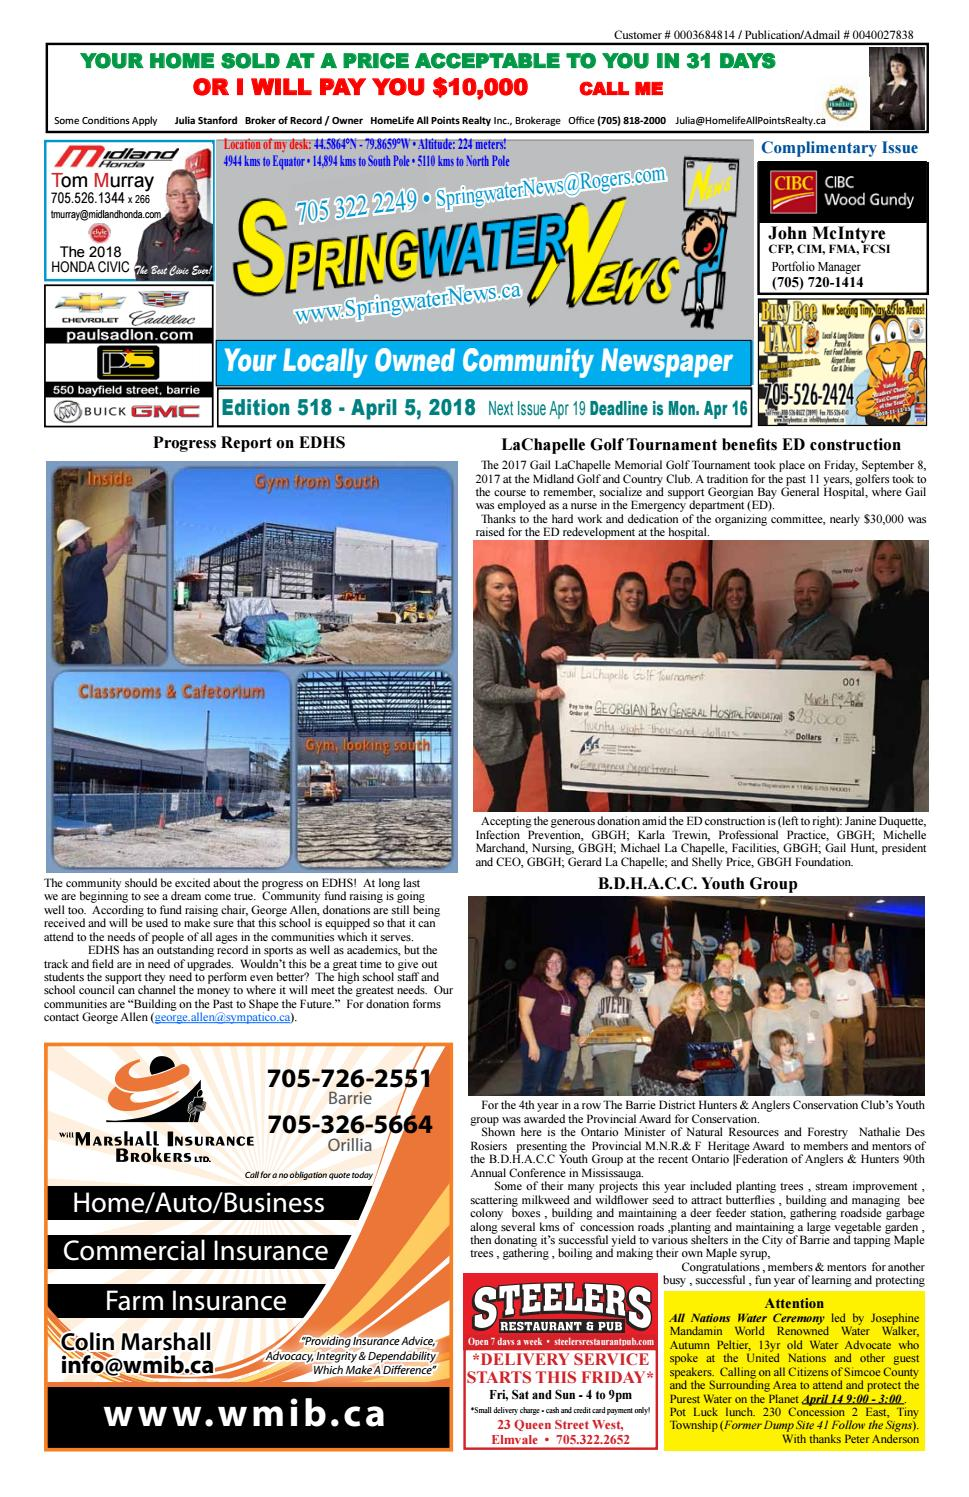 April 5 2018 ed 518 for web by Springwater News - issuu